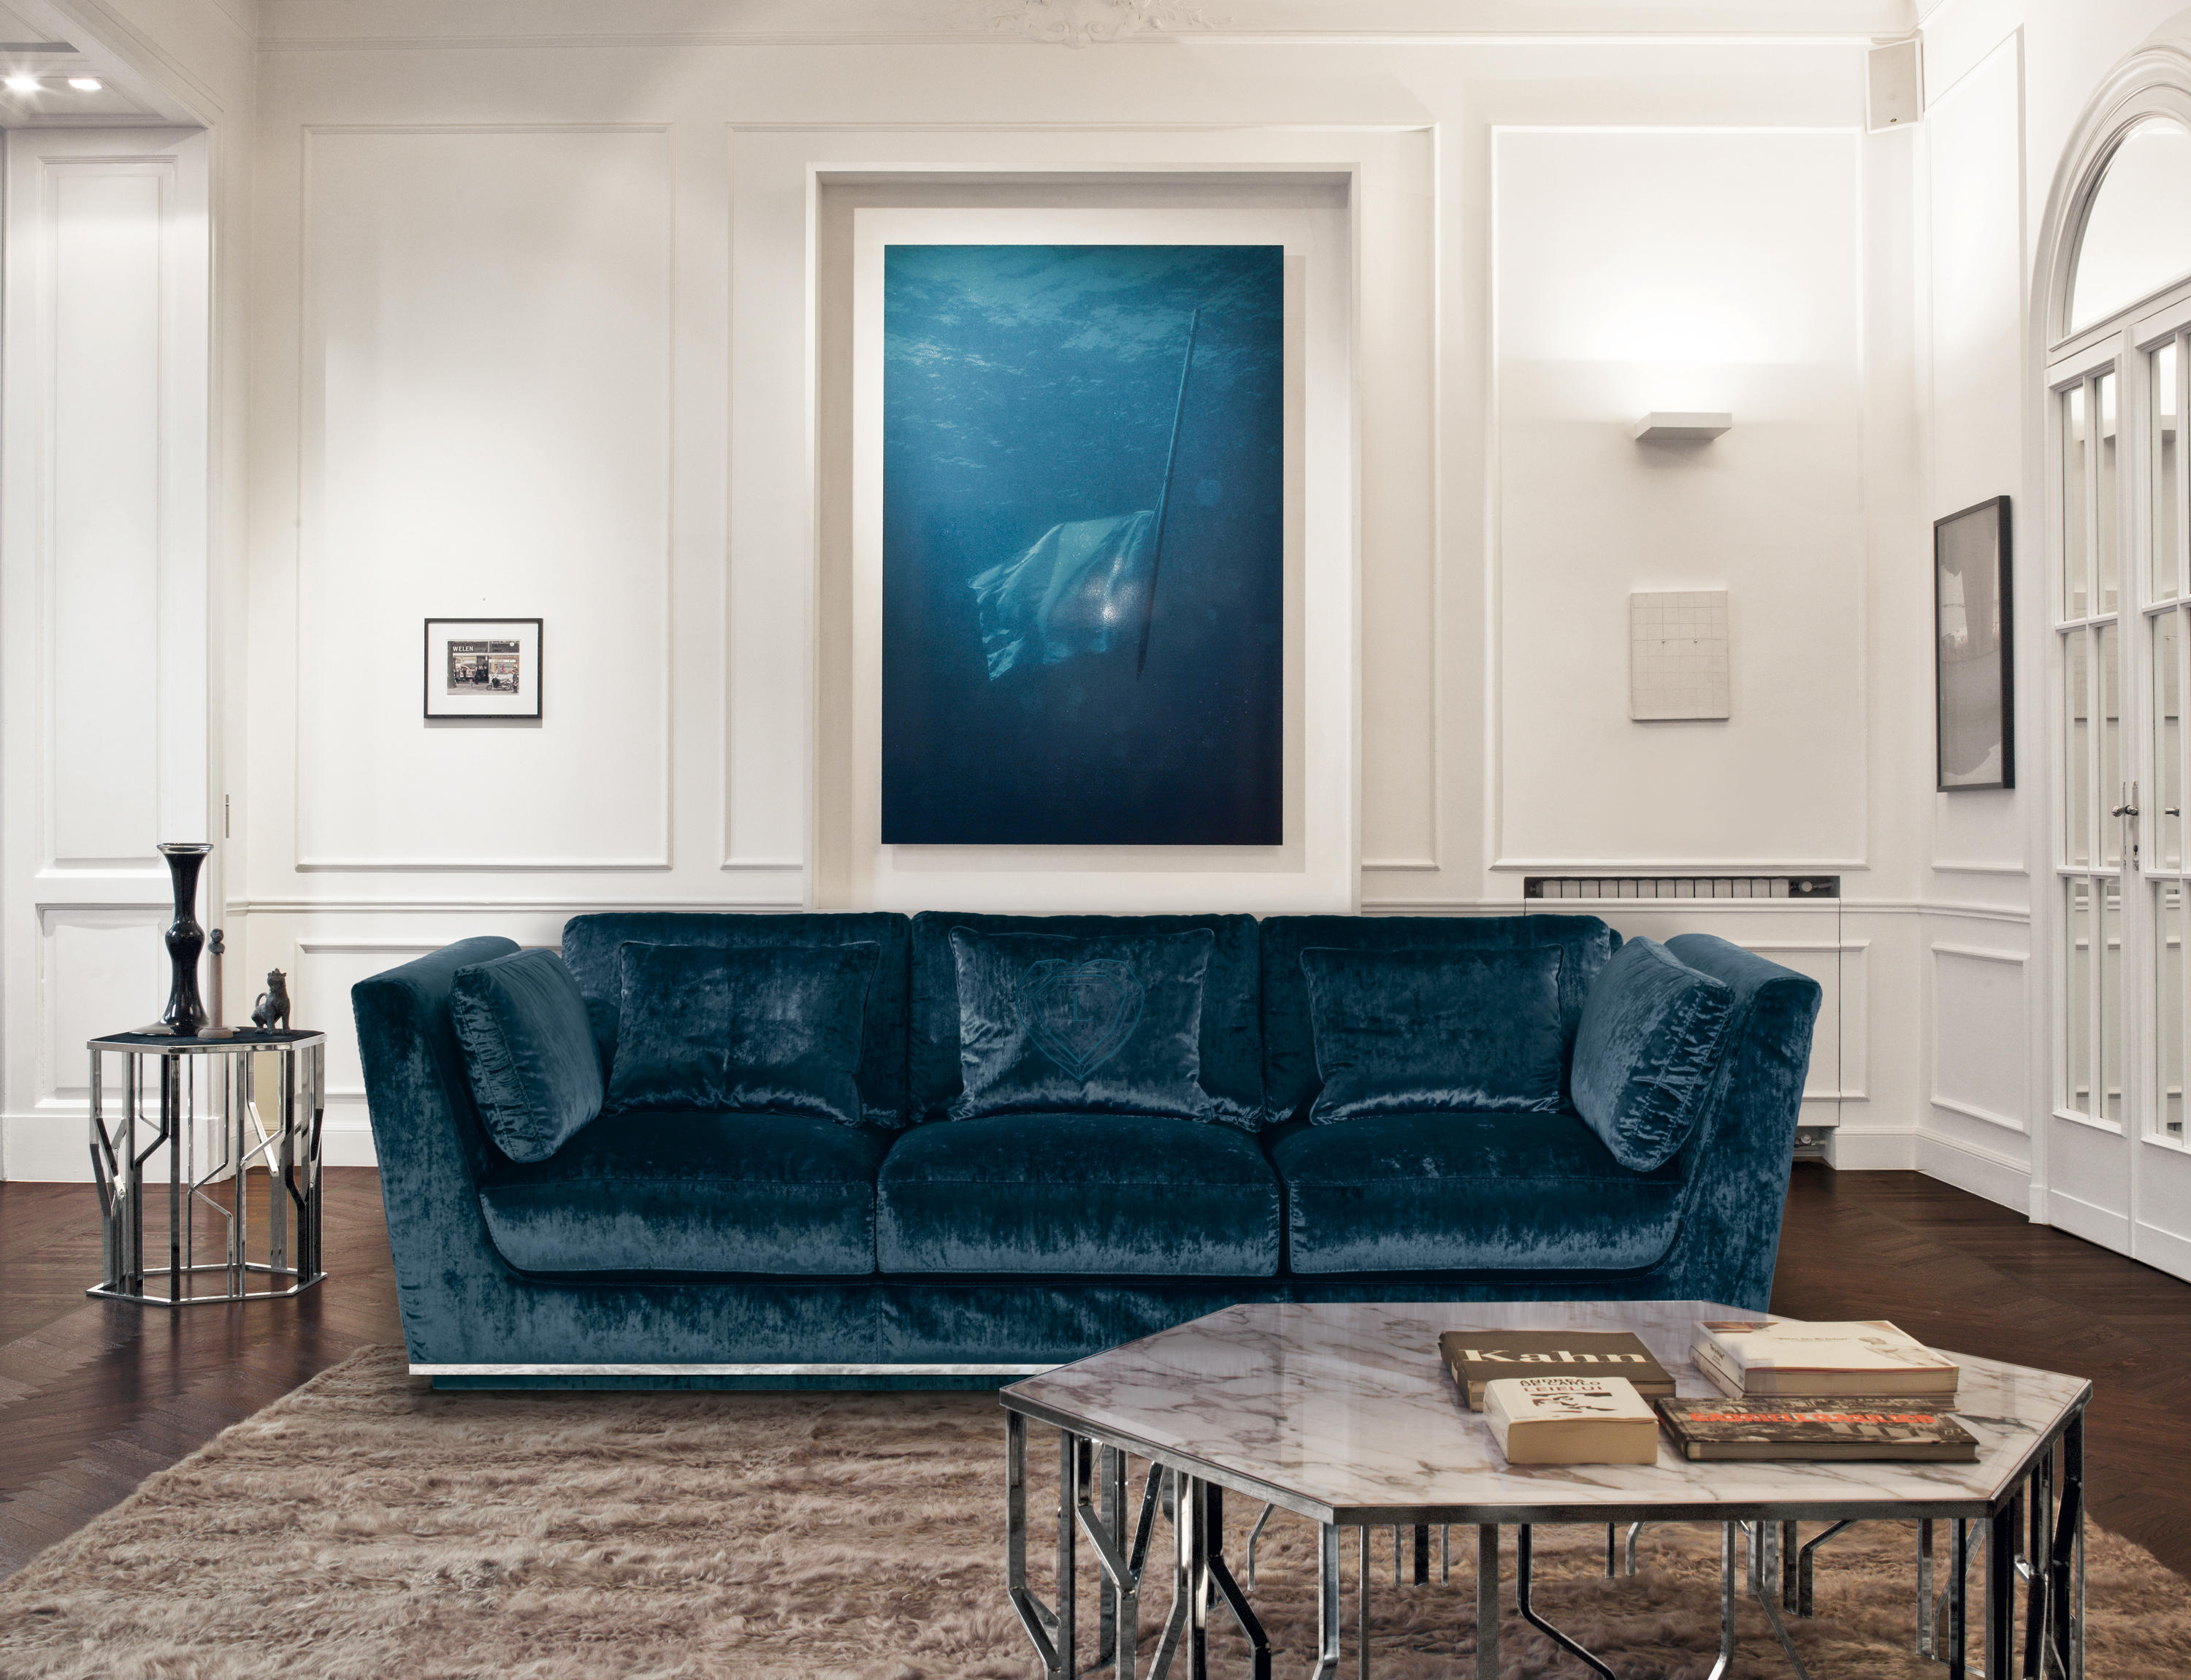 Nobu sofas from longhi s p a architonic for Longhi arredamenti